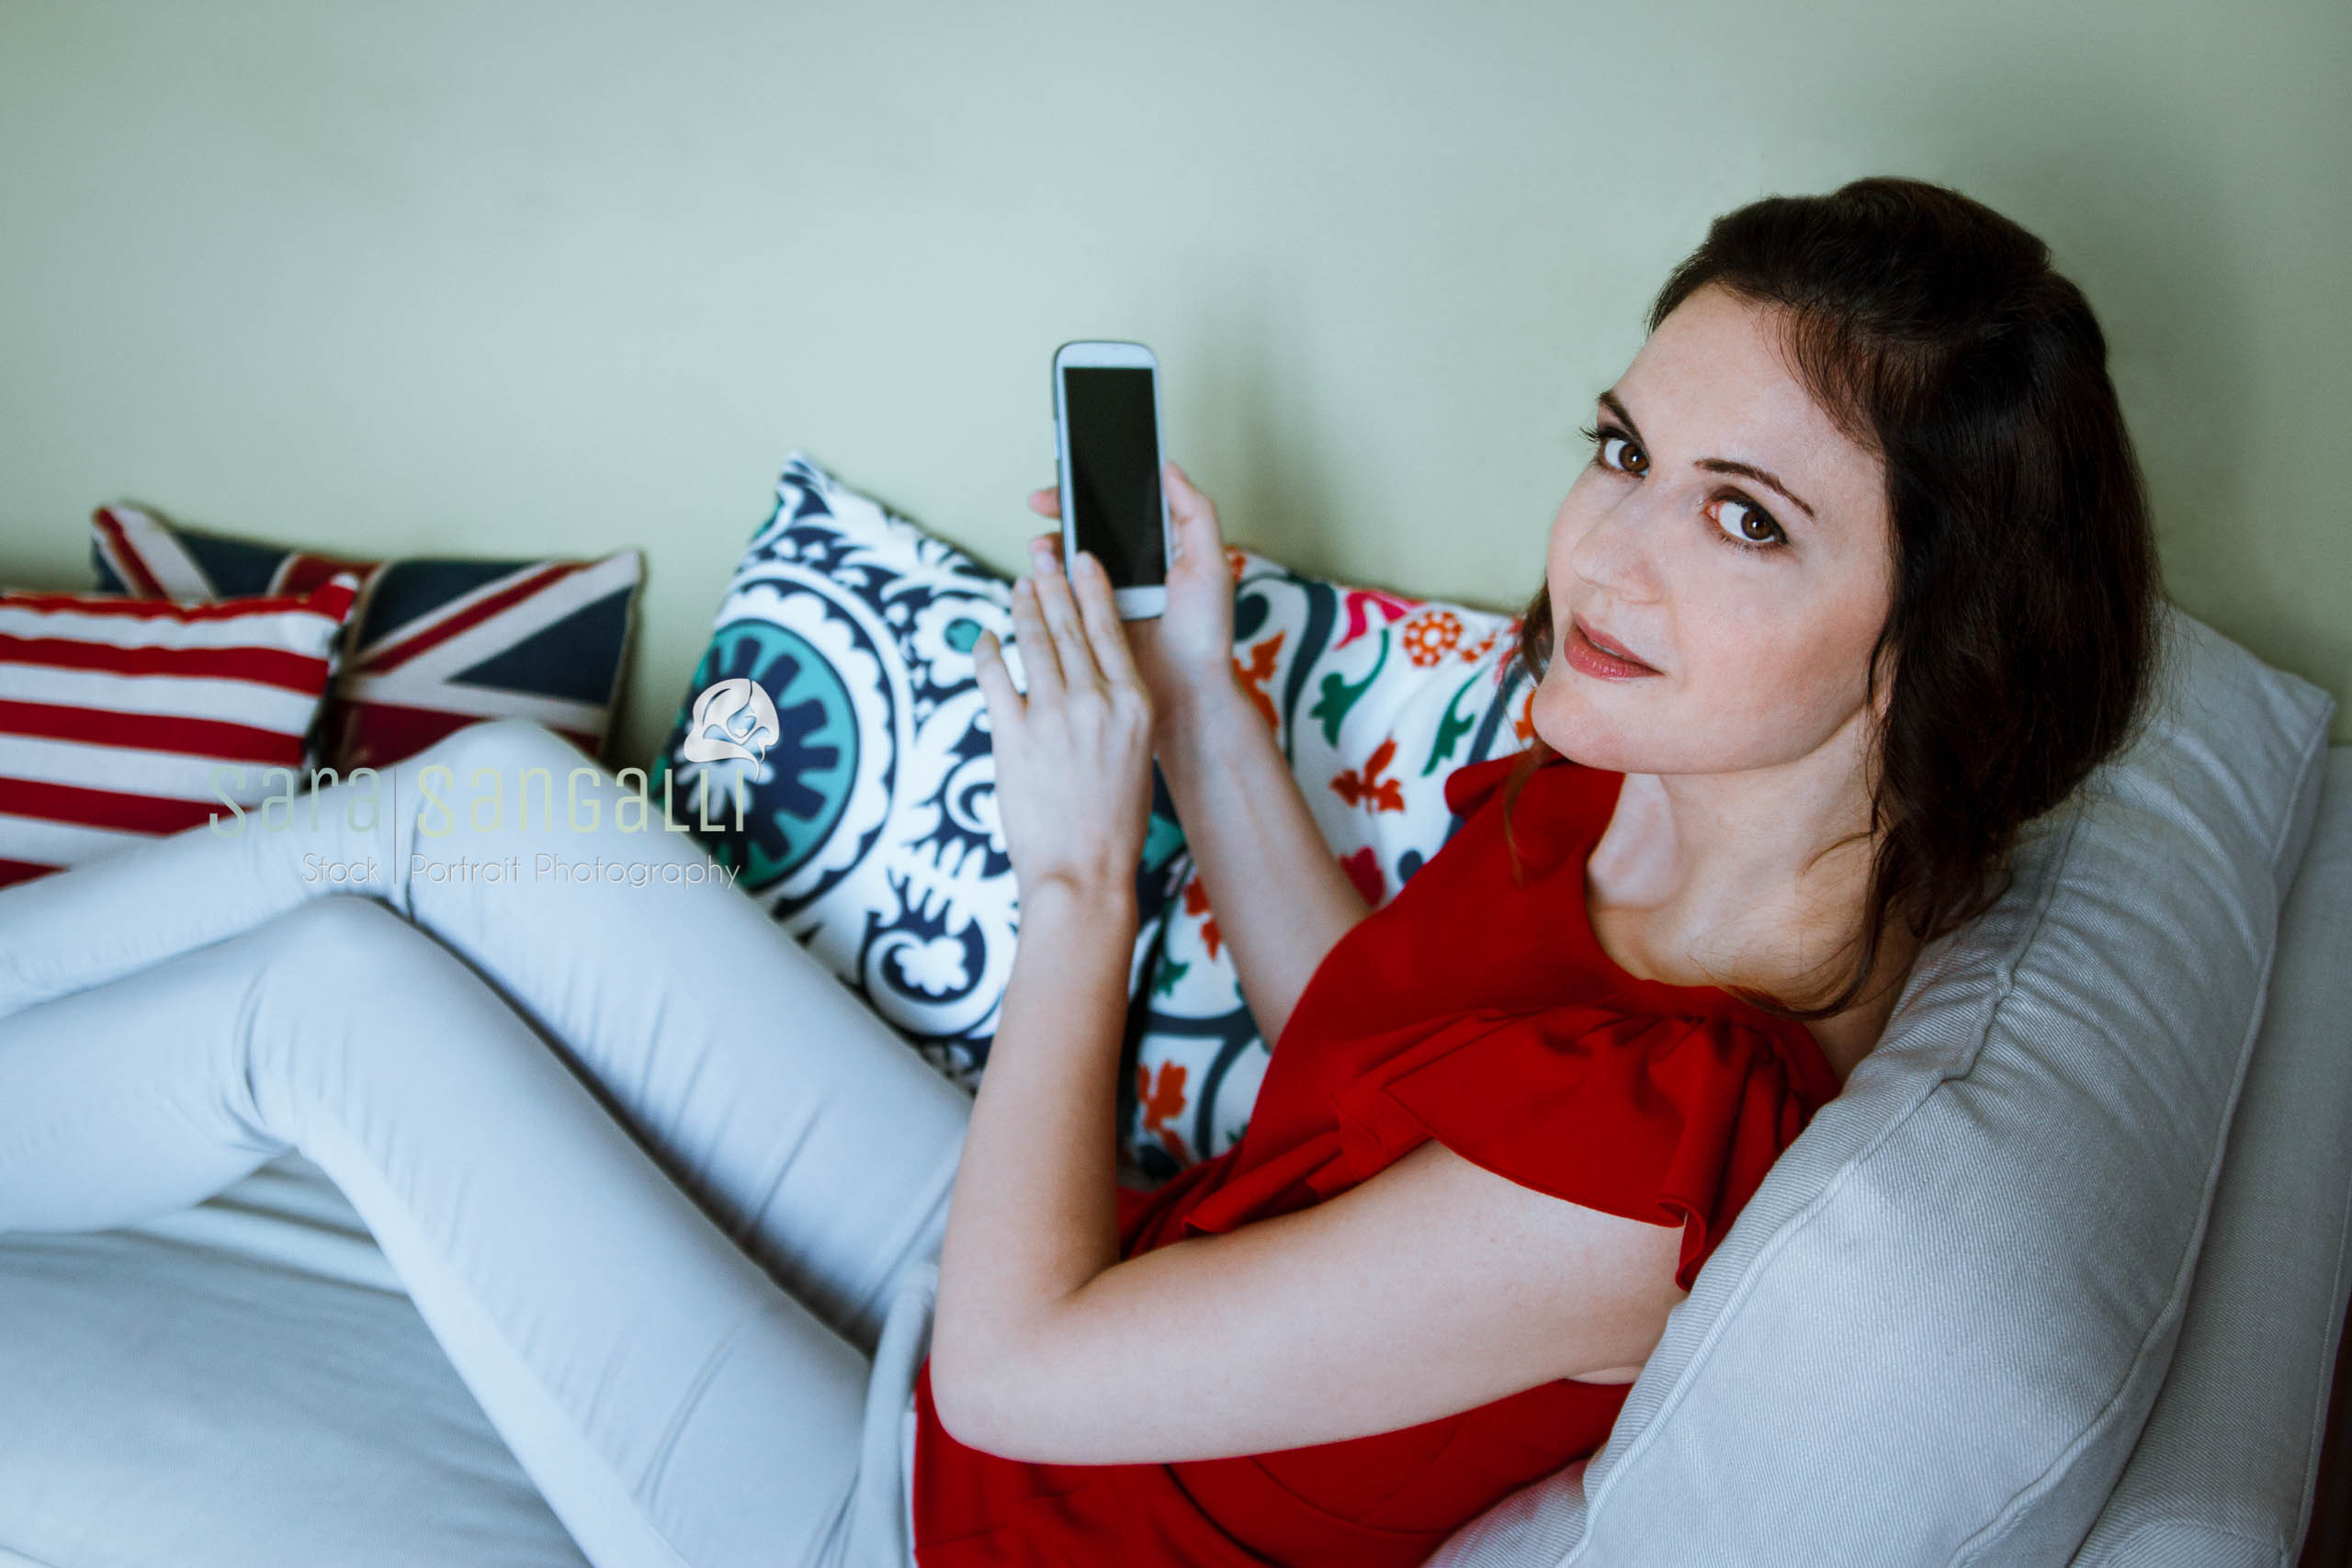 Brunette holding smartphone while sitting on a couch and looking at camera